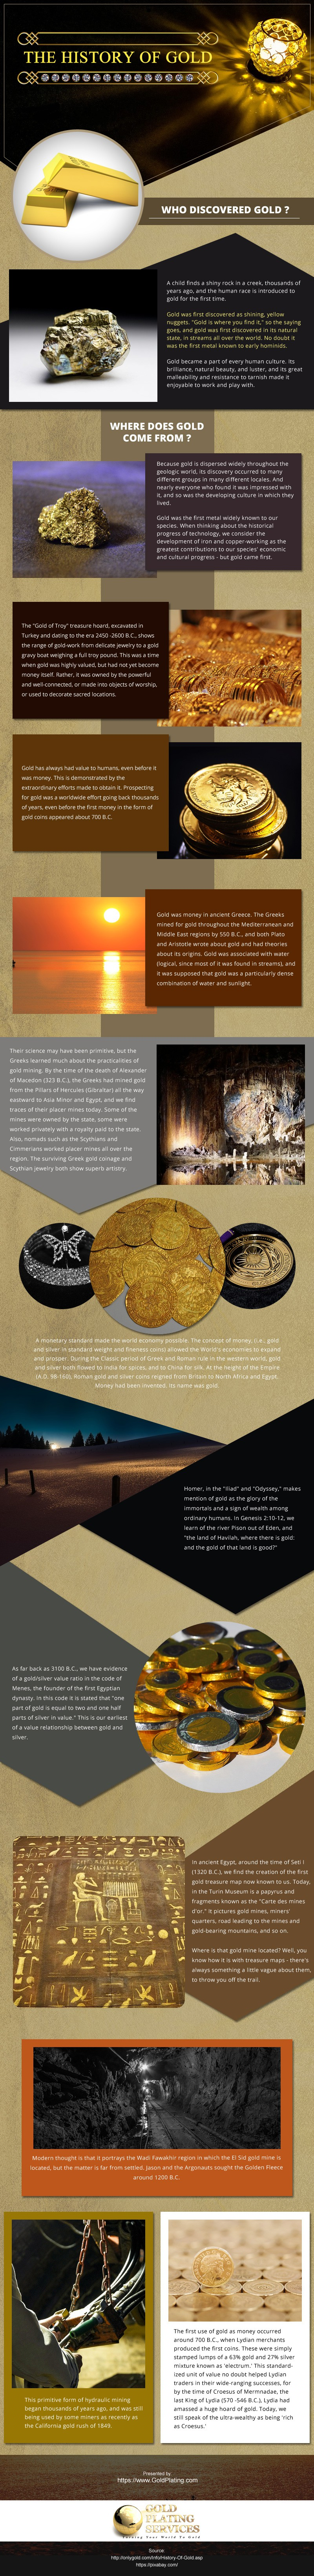 Gold-History Infographic